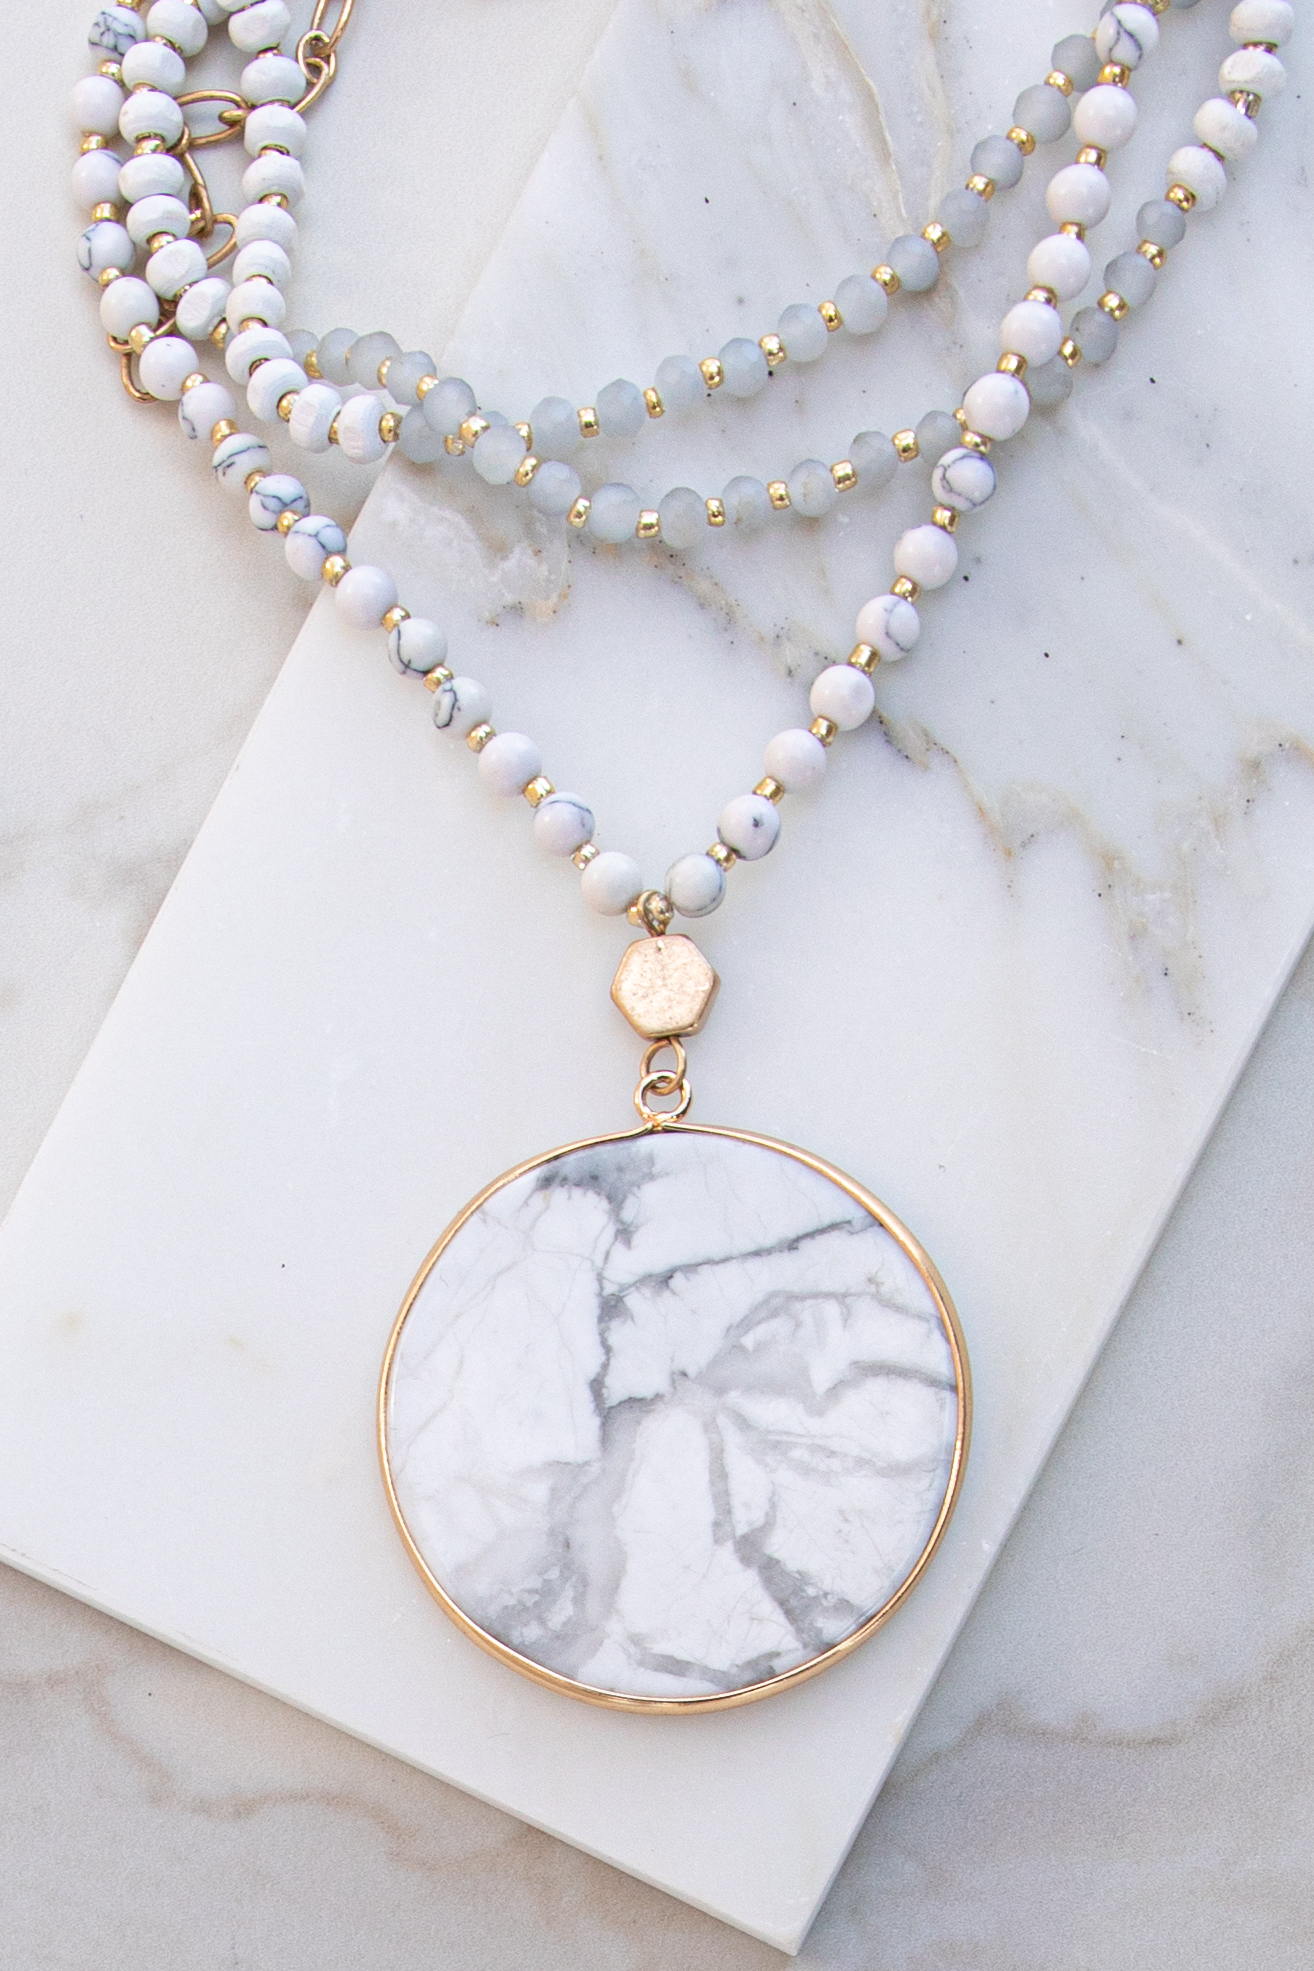 Gold and Marble Long Necklace with Round Pendant